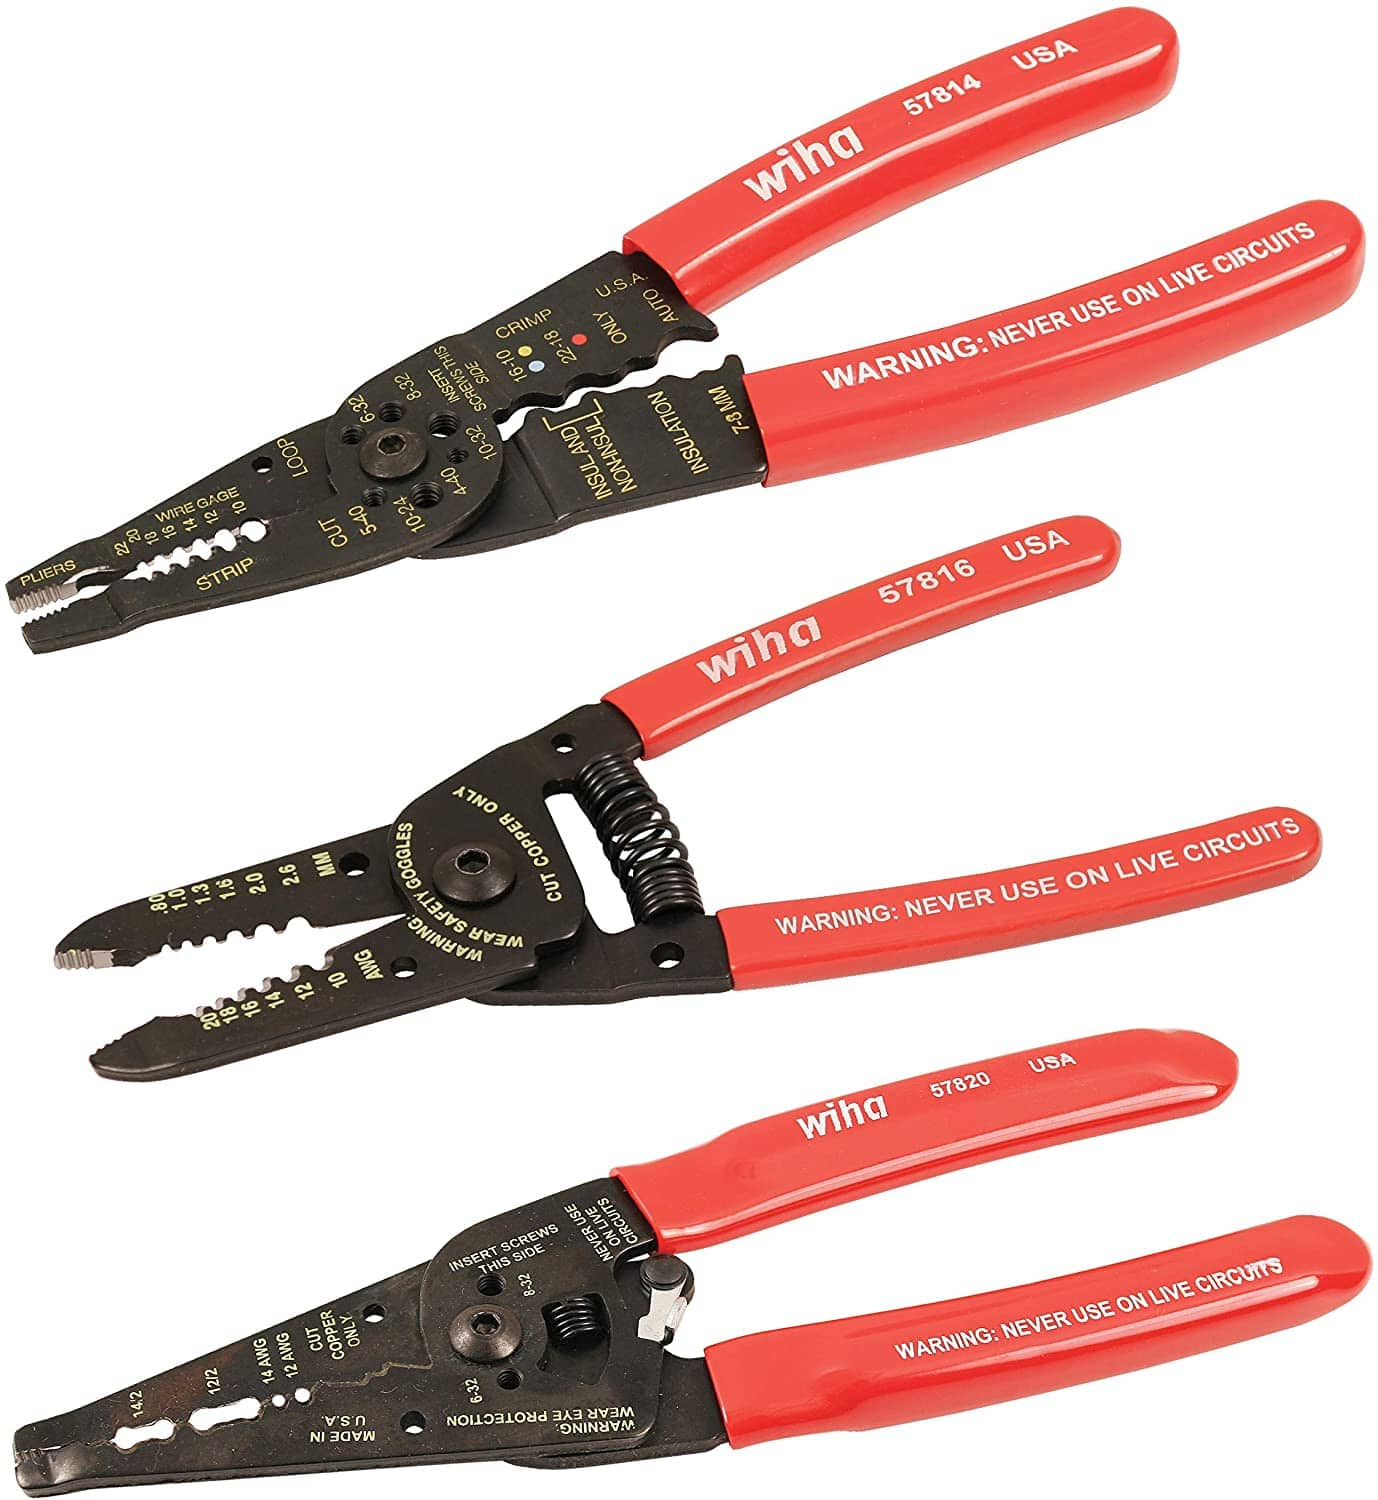 Wiha 57830 Wire Strippers/Crimpers/Pliers Set, 3 Piece. $25.59 $25.58